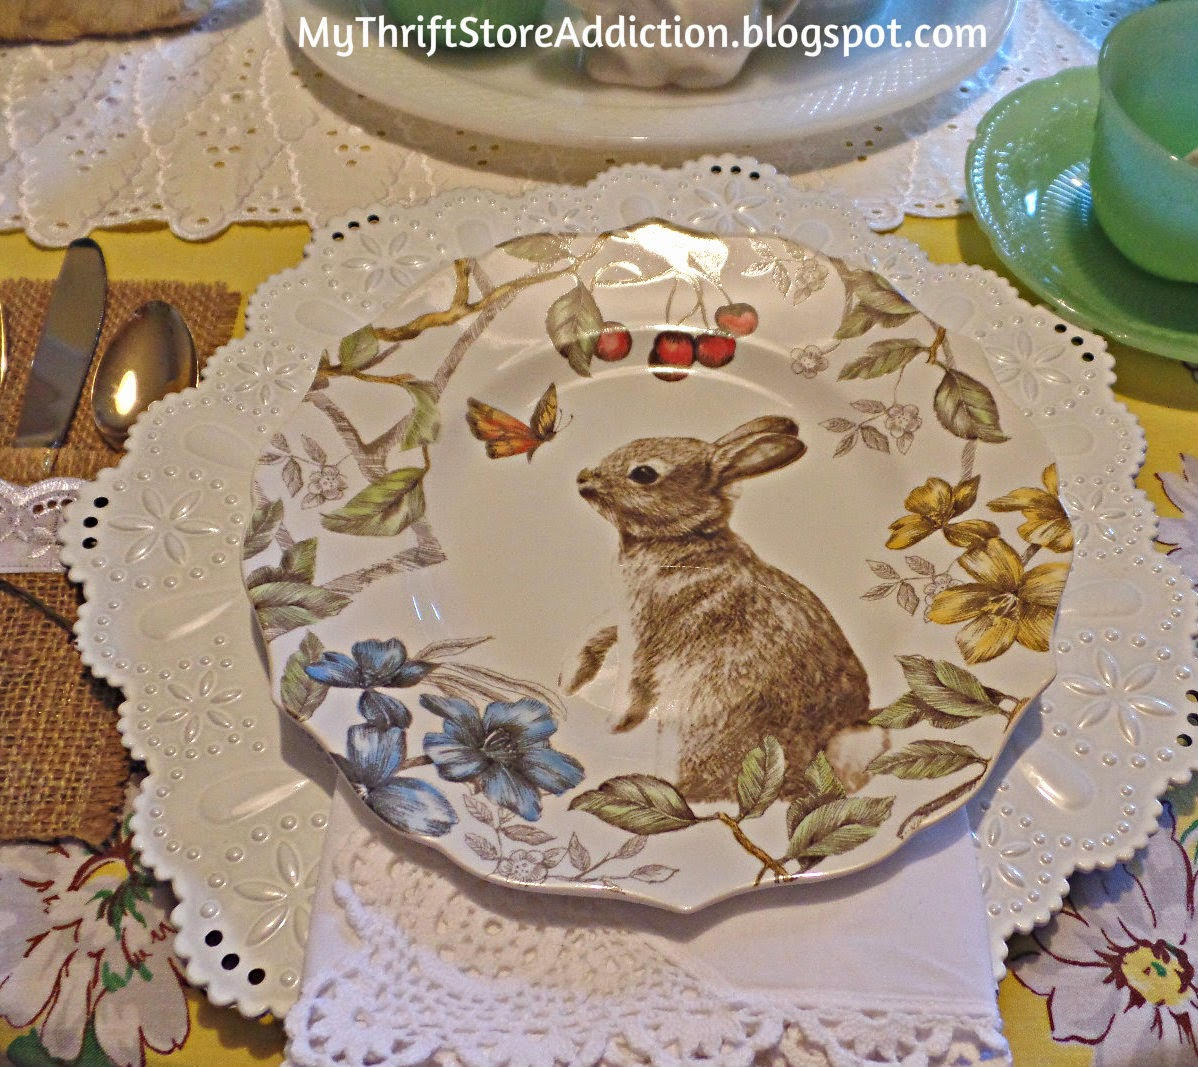 Pier One bunny dishes